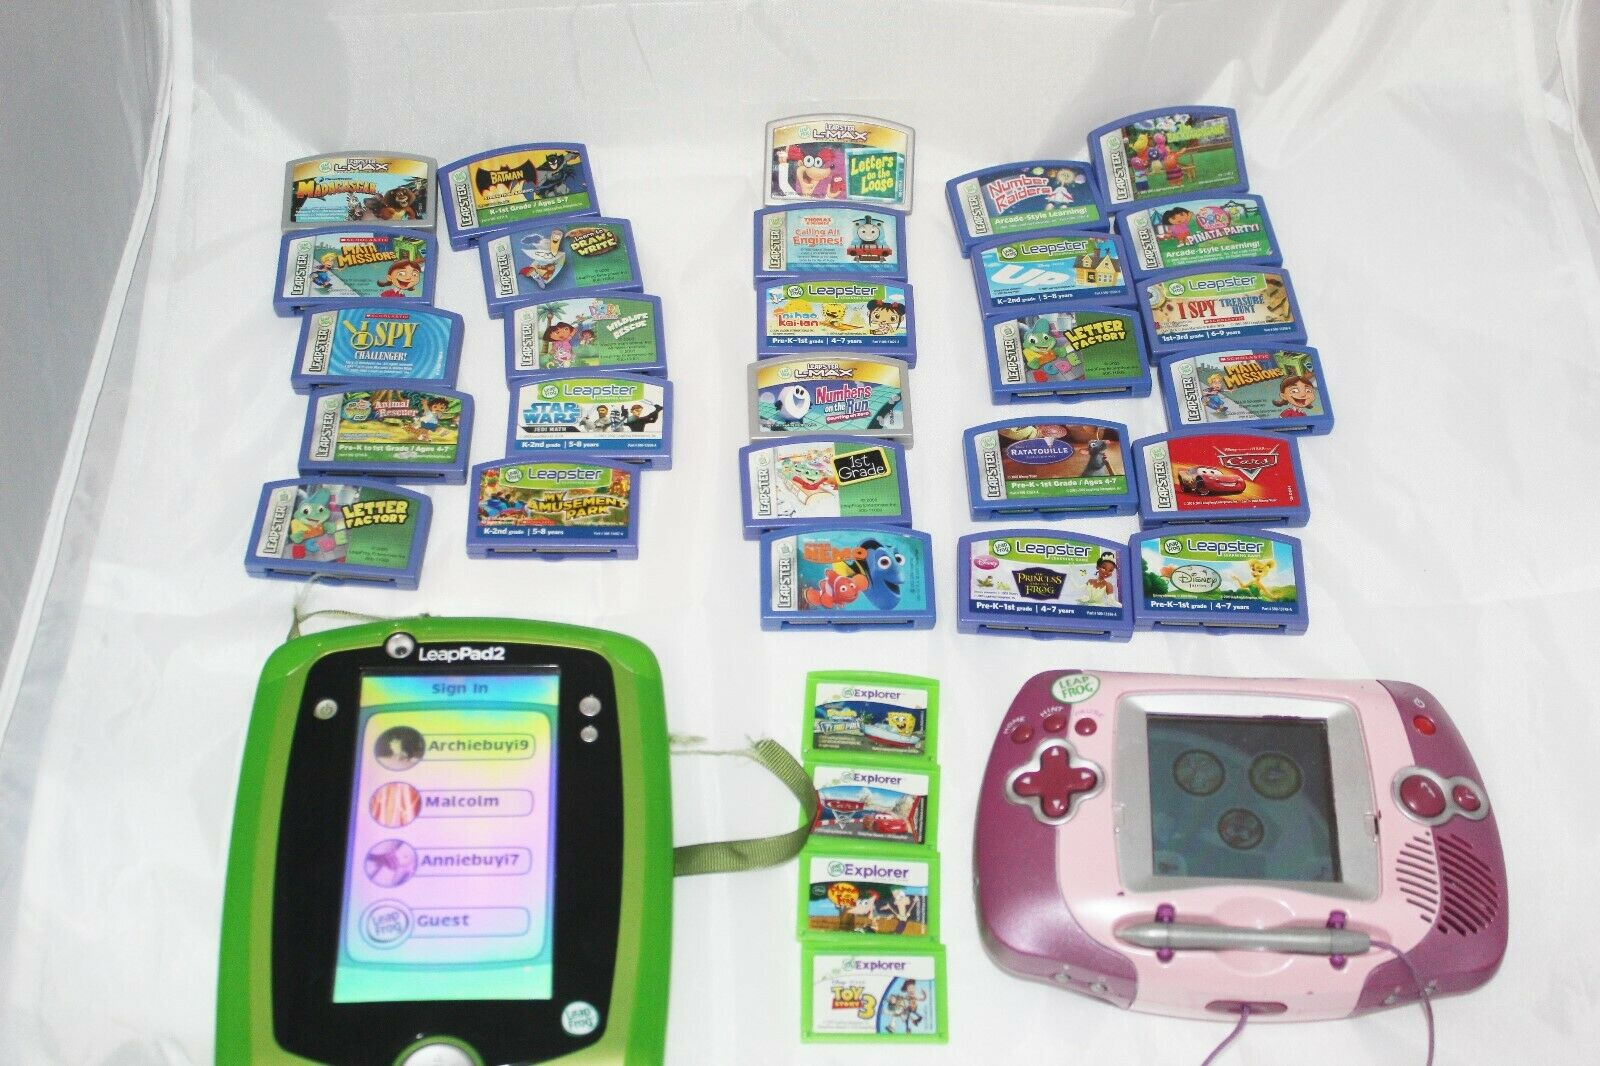 Massive Leappad and Leapfrog systems and games with case